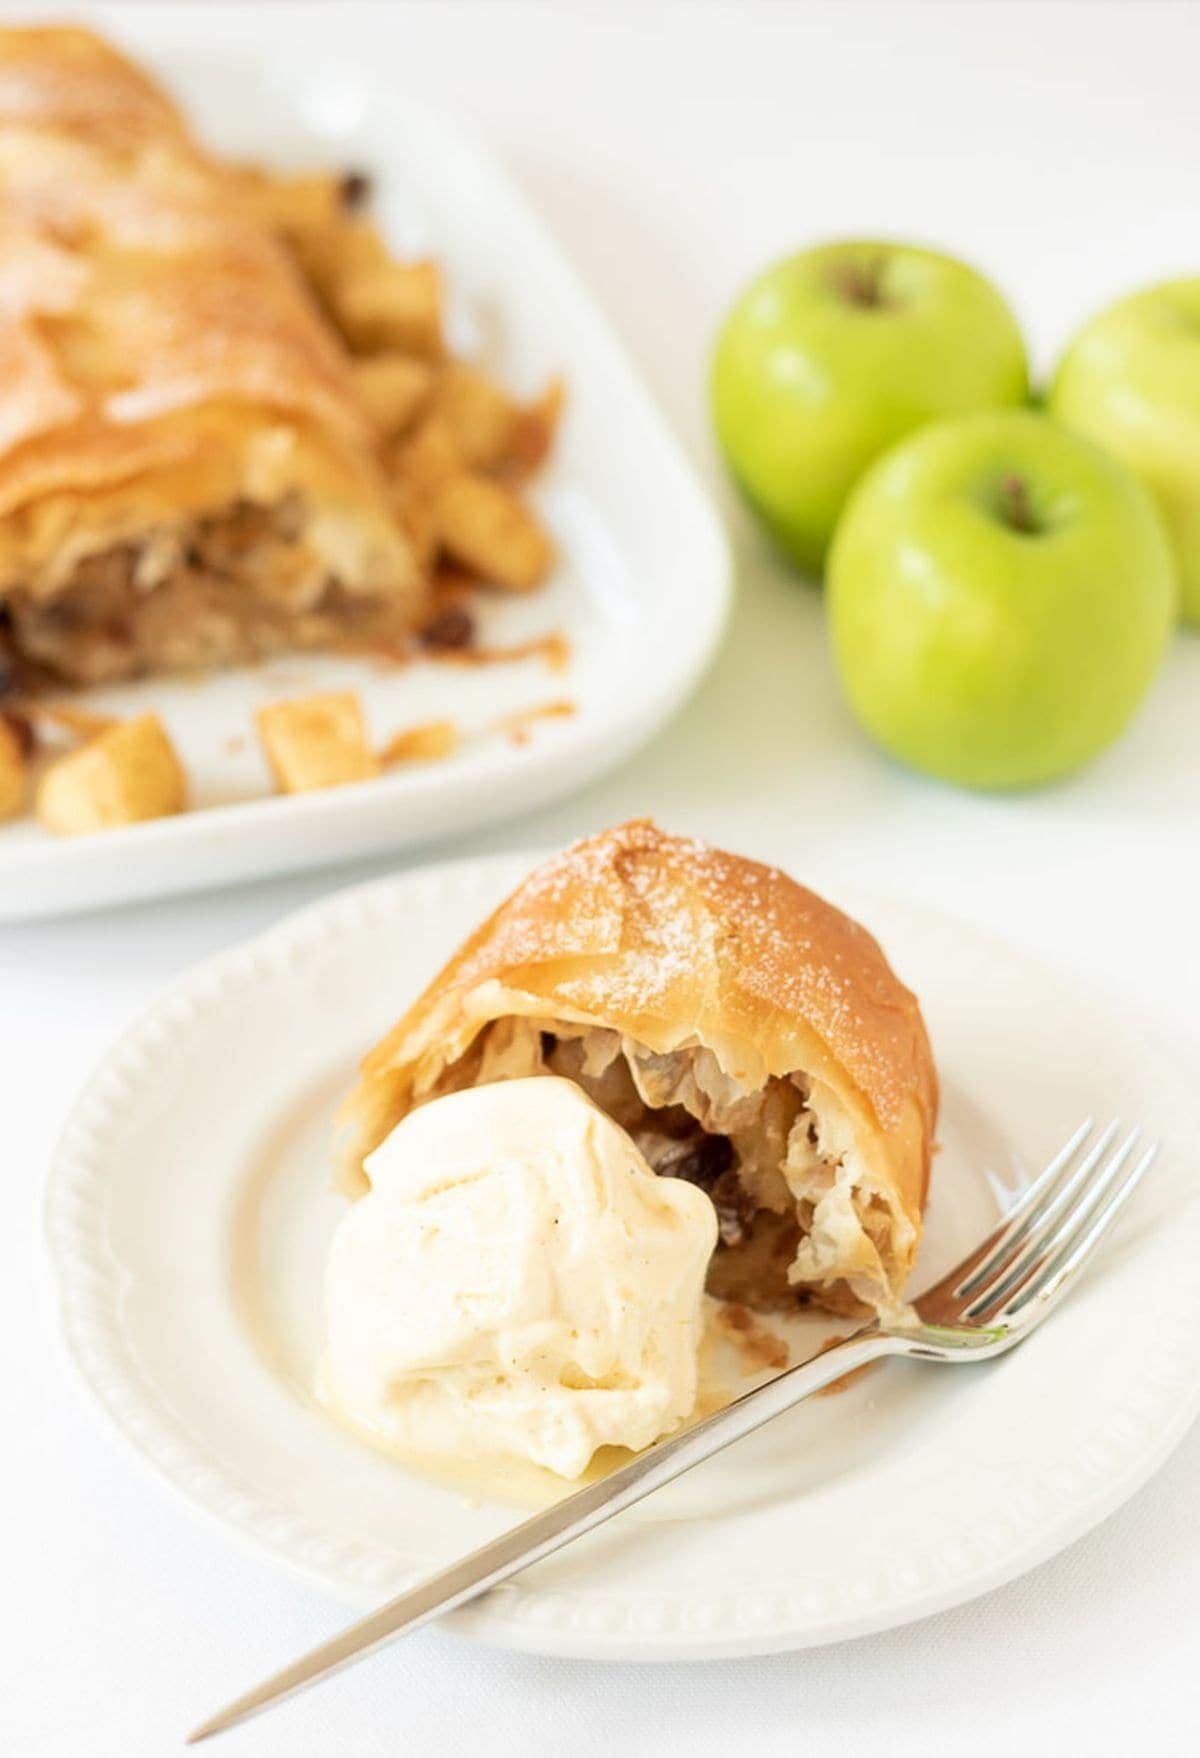 Sugar free easy apple strudel served on a plate with a blob of ice cream and a fork beside. Rest of the strudel and three apples in the background.